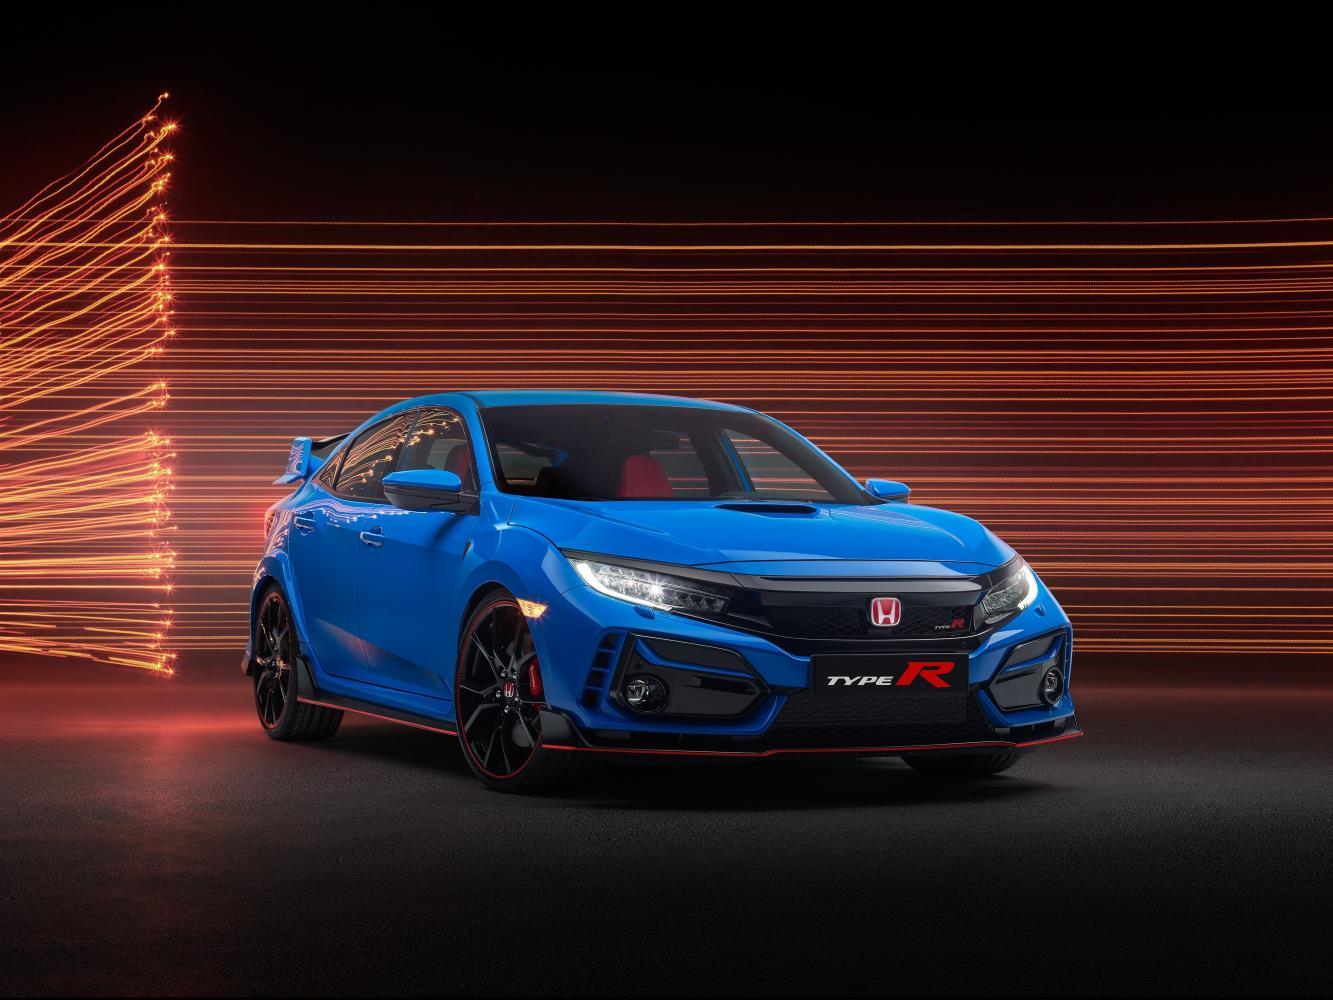 Honda Civic Type R static